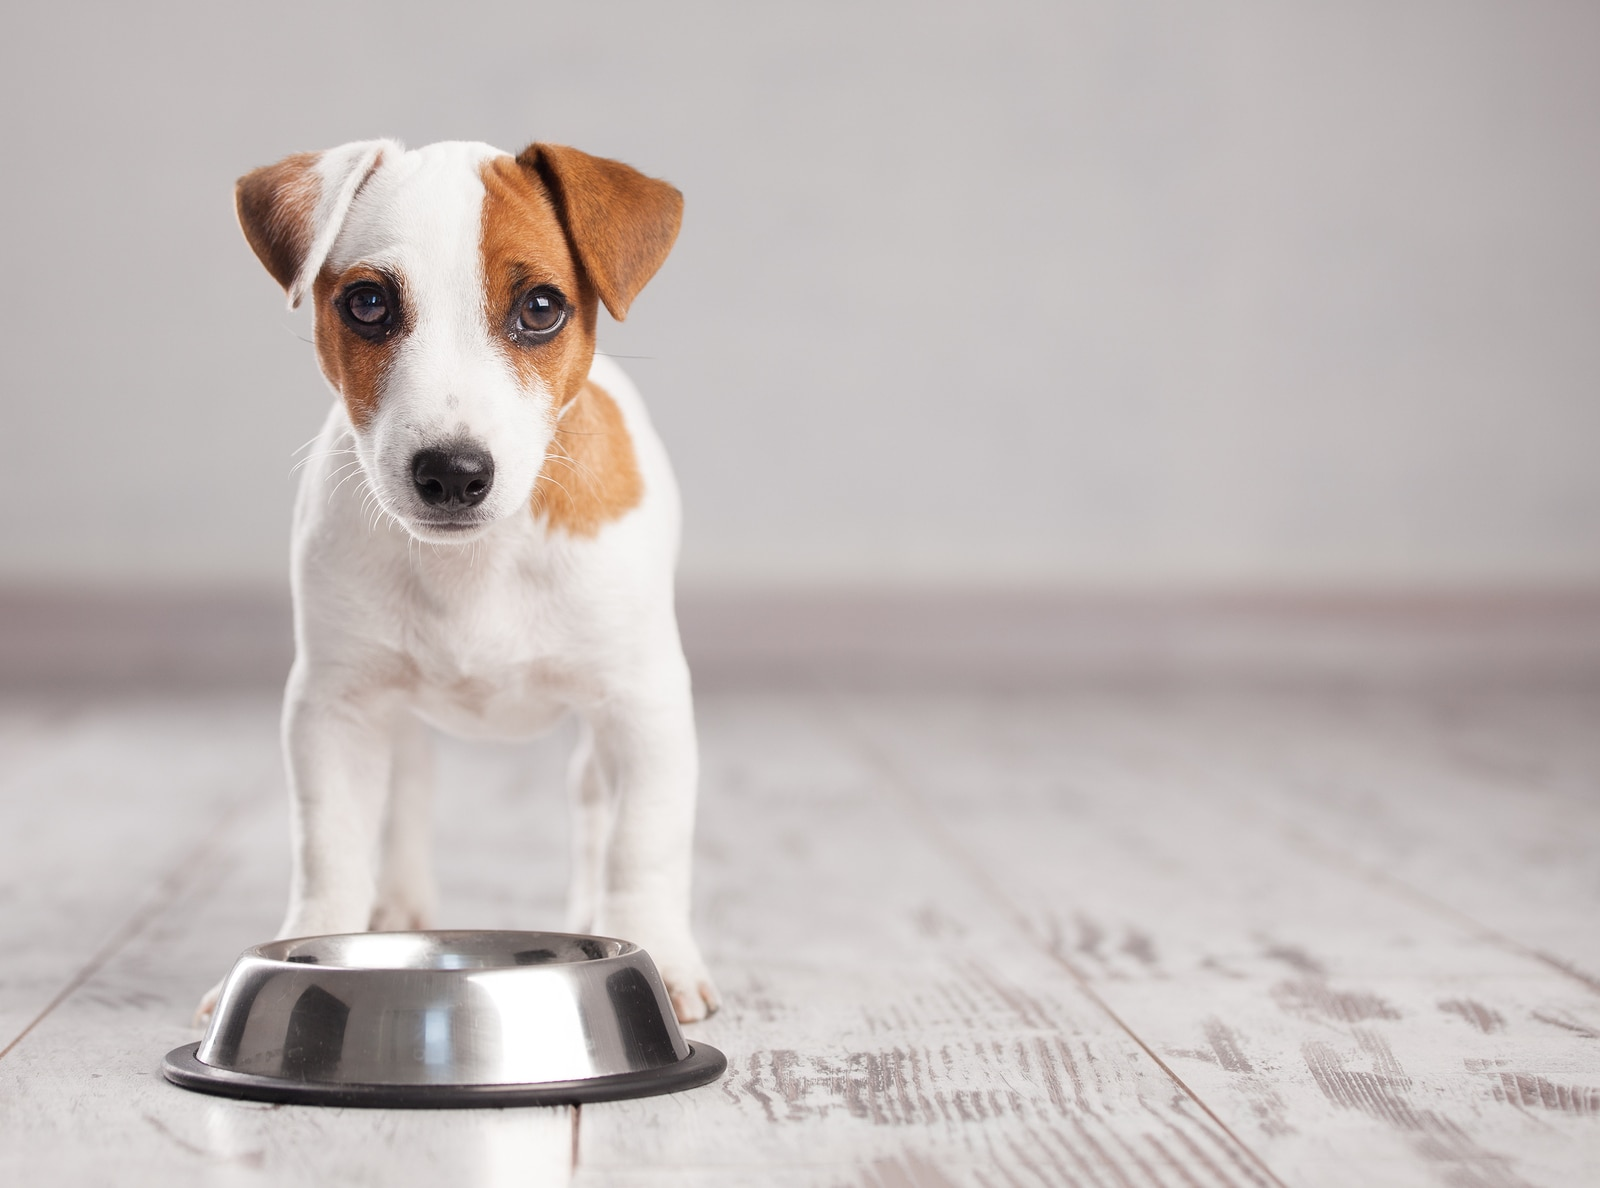 Jack Russell Terrier puppy stands behind silver dog bowl on gray wooden floor.